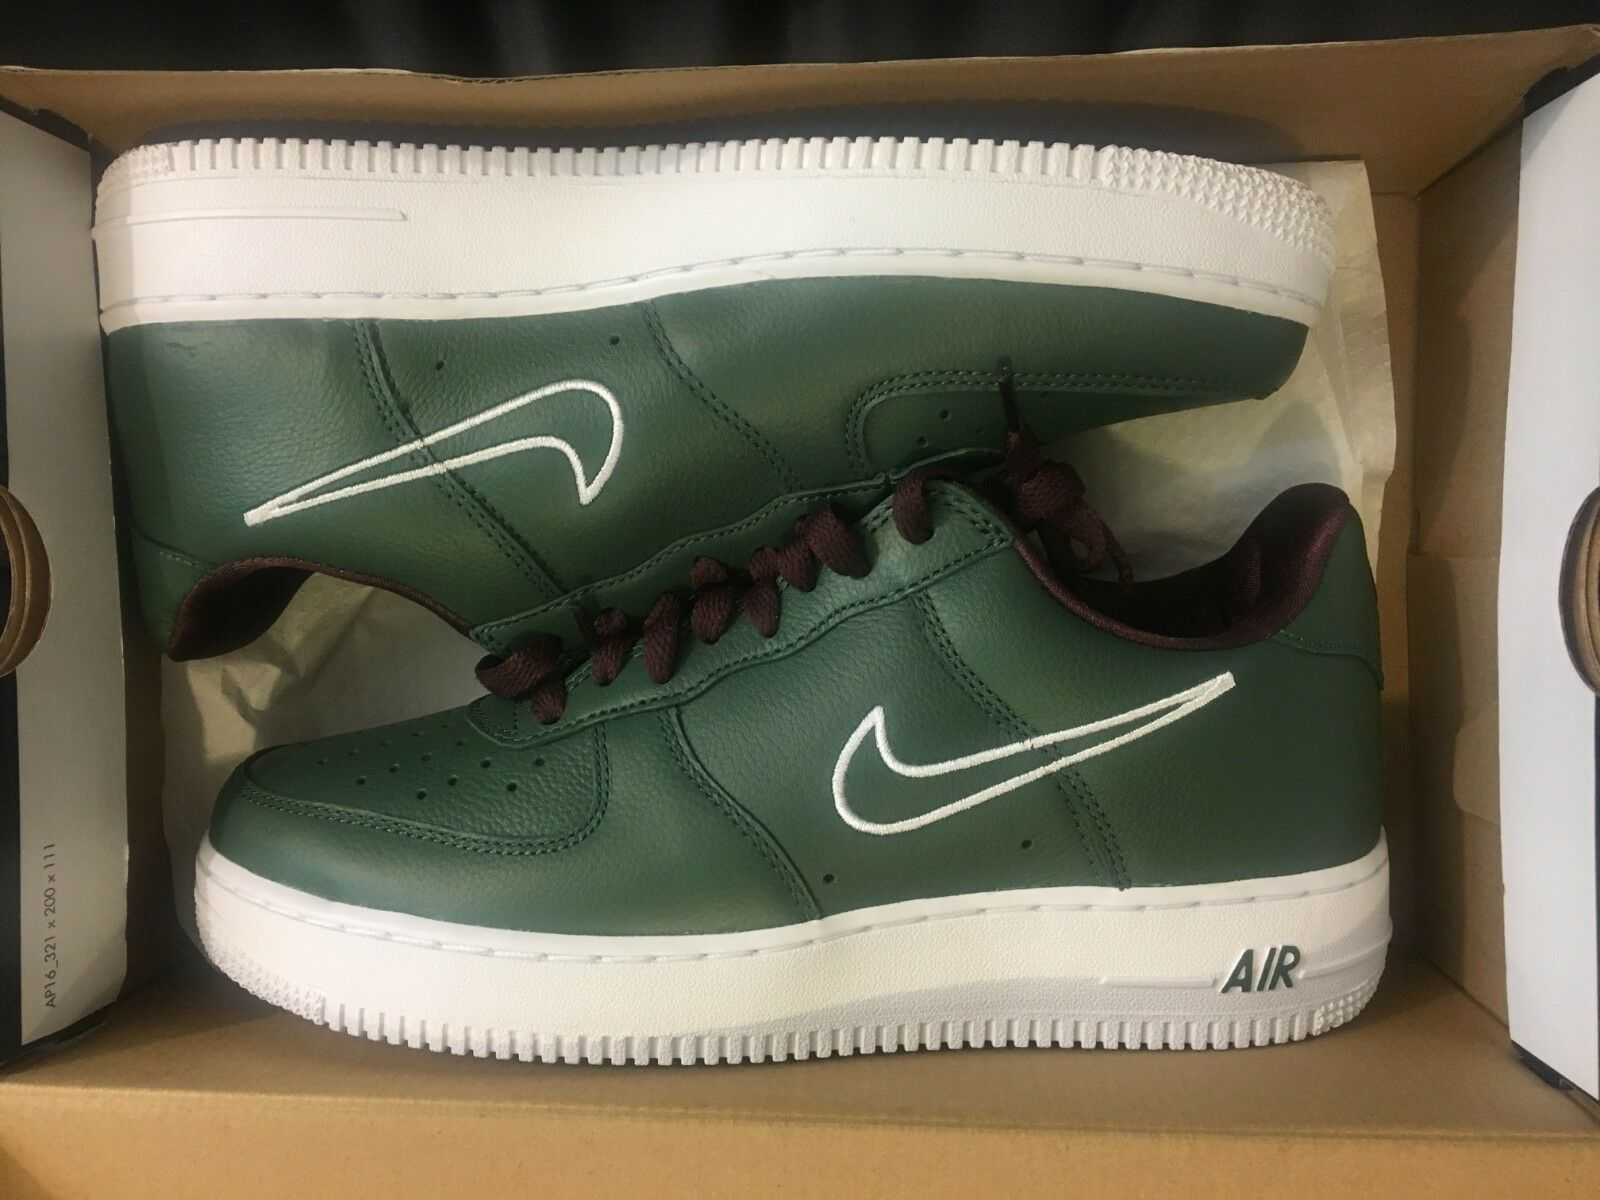 NEW NIKE AIR FORCE 1 LOW RETRO HONG KONG AF1 FOREST SHOES 845053-300 MEN SIZE 8